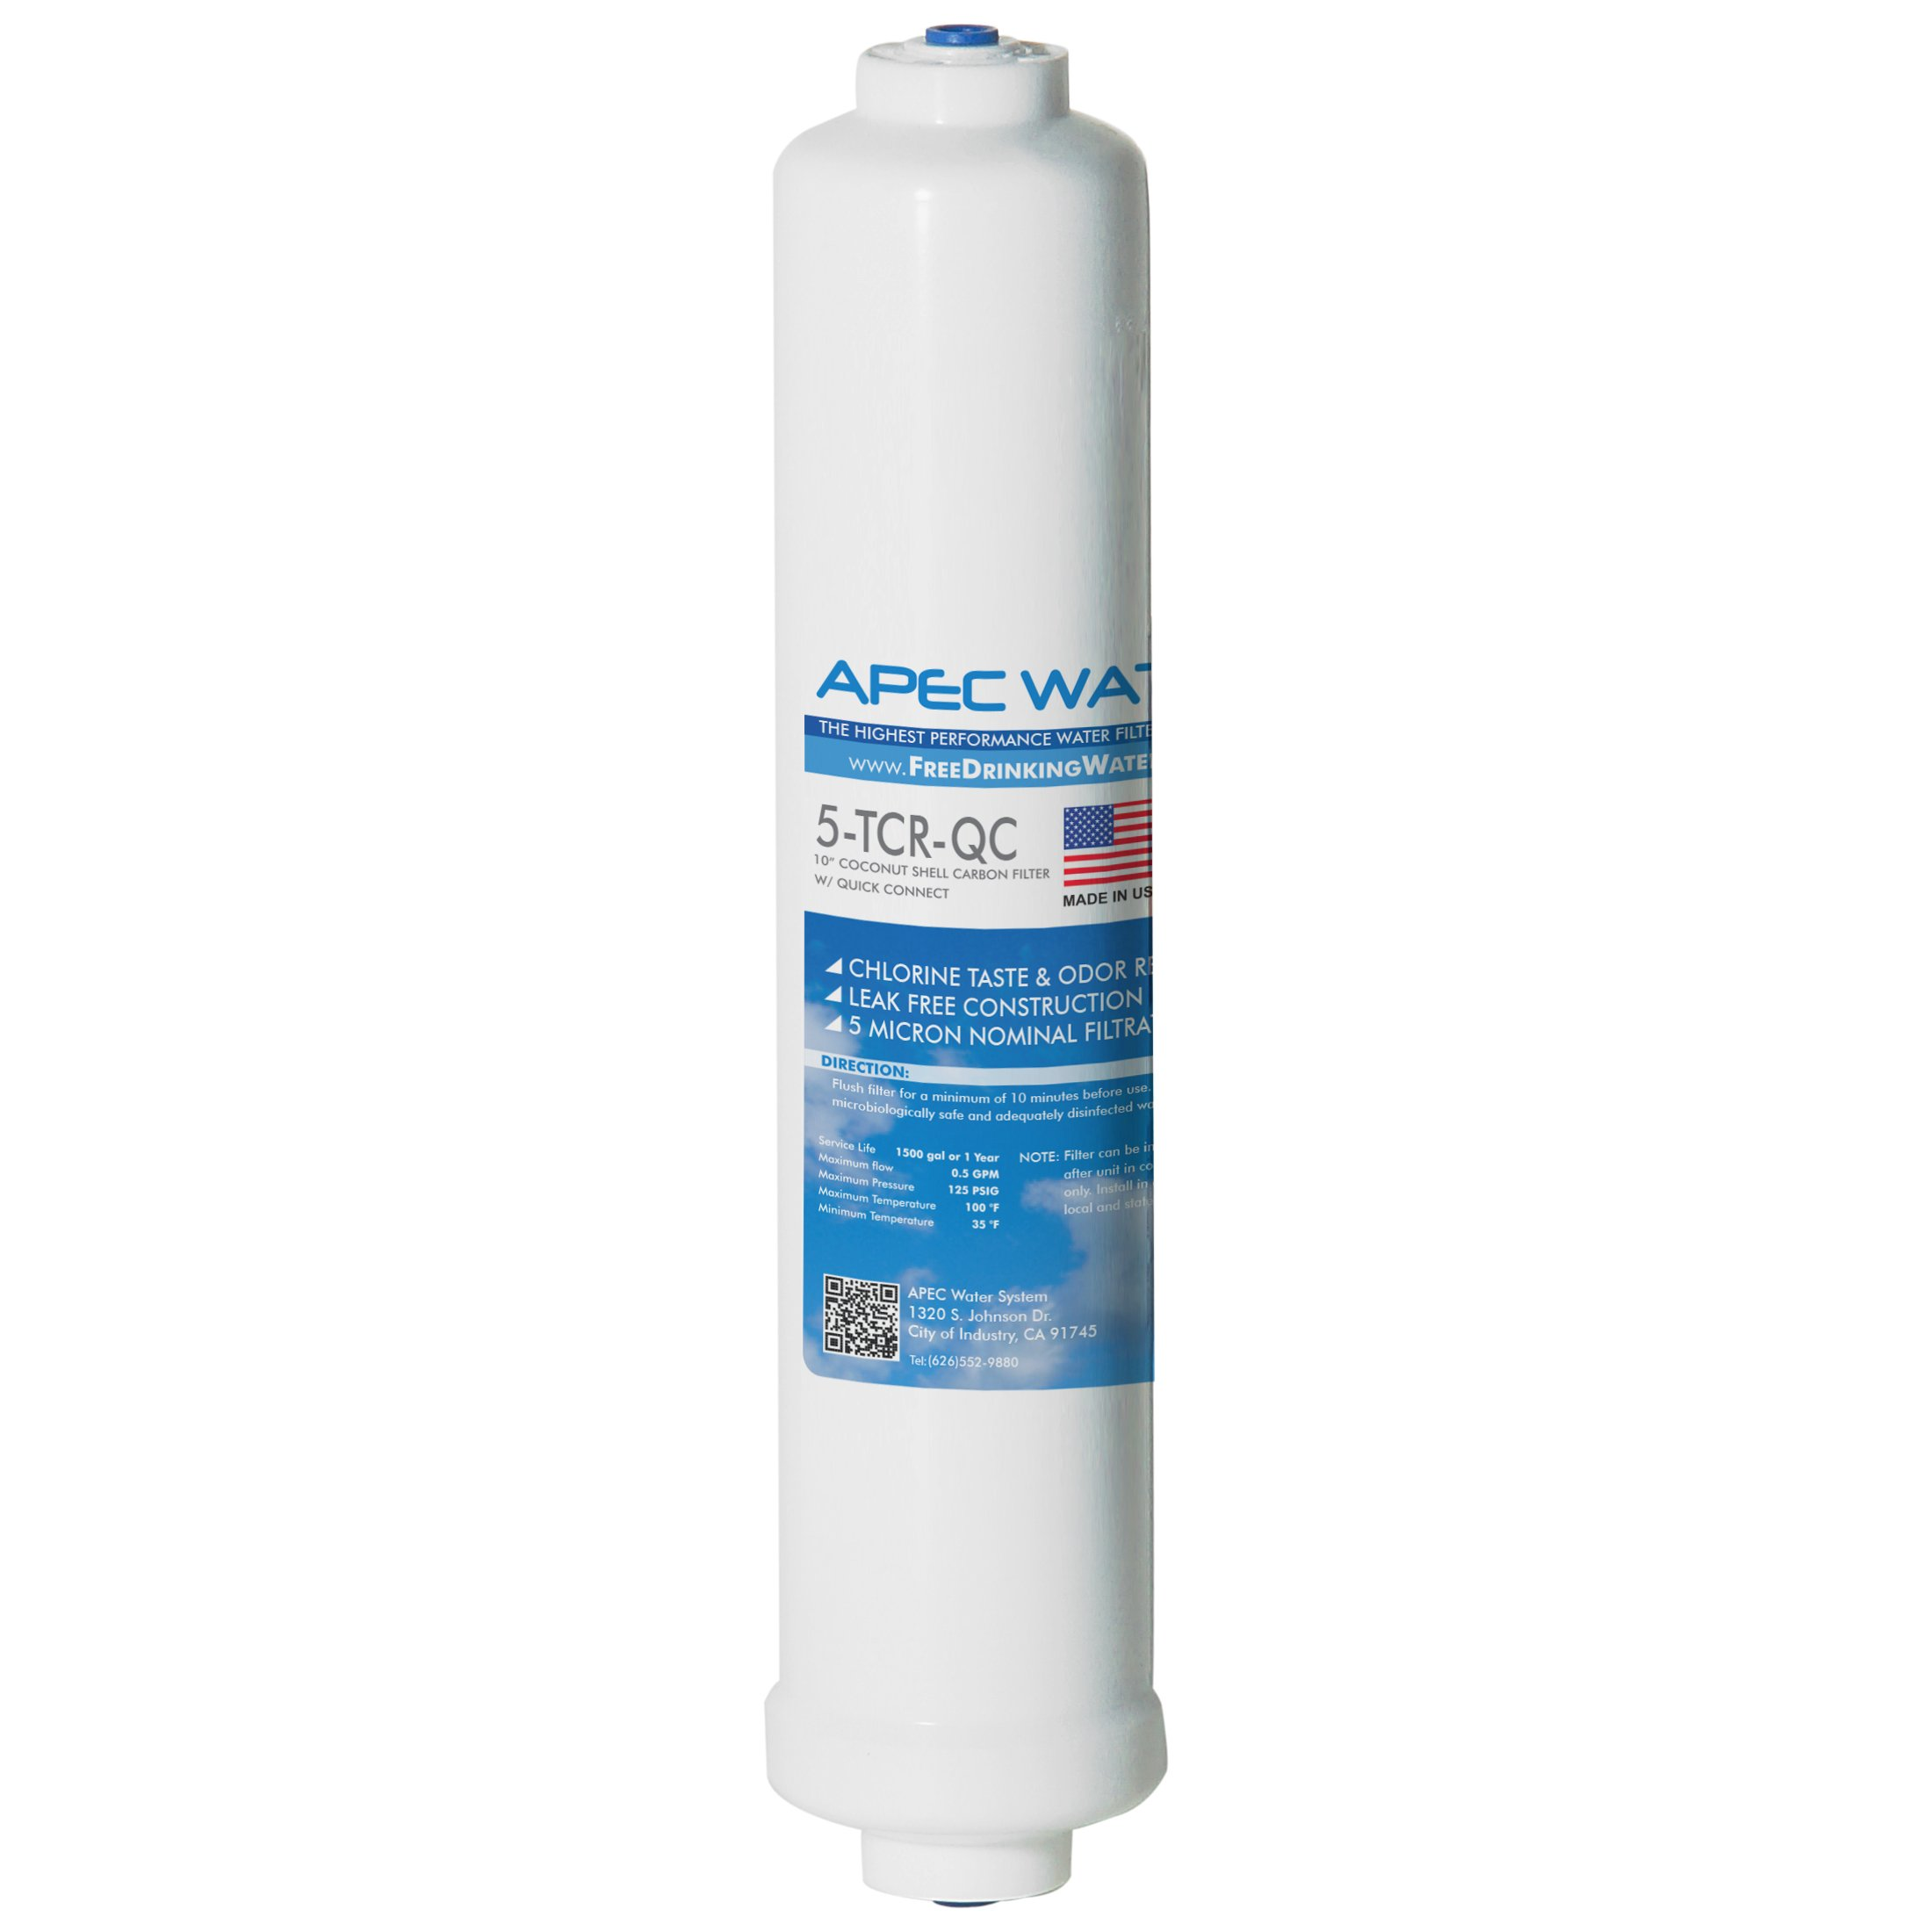 "APEC 5-TCR-QC US MADE 10'' Inline Carbon Filter with ¼"" Quick Connect For Reverse Osmosis Water Filter System (For Standard System)"